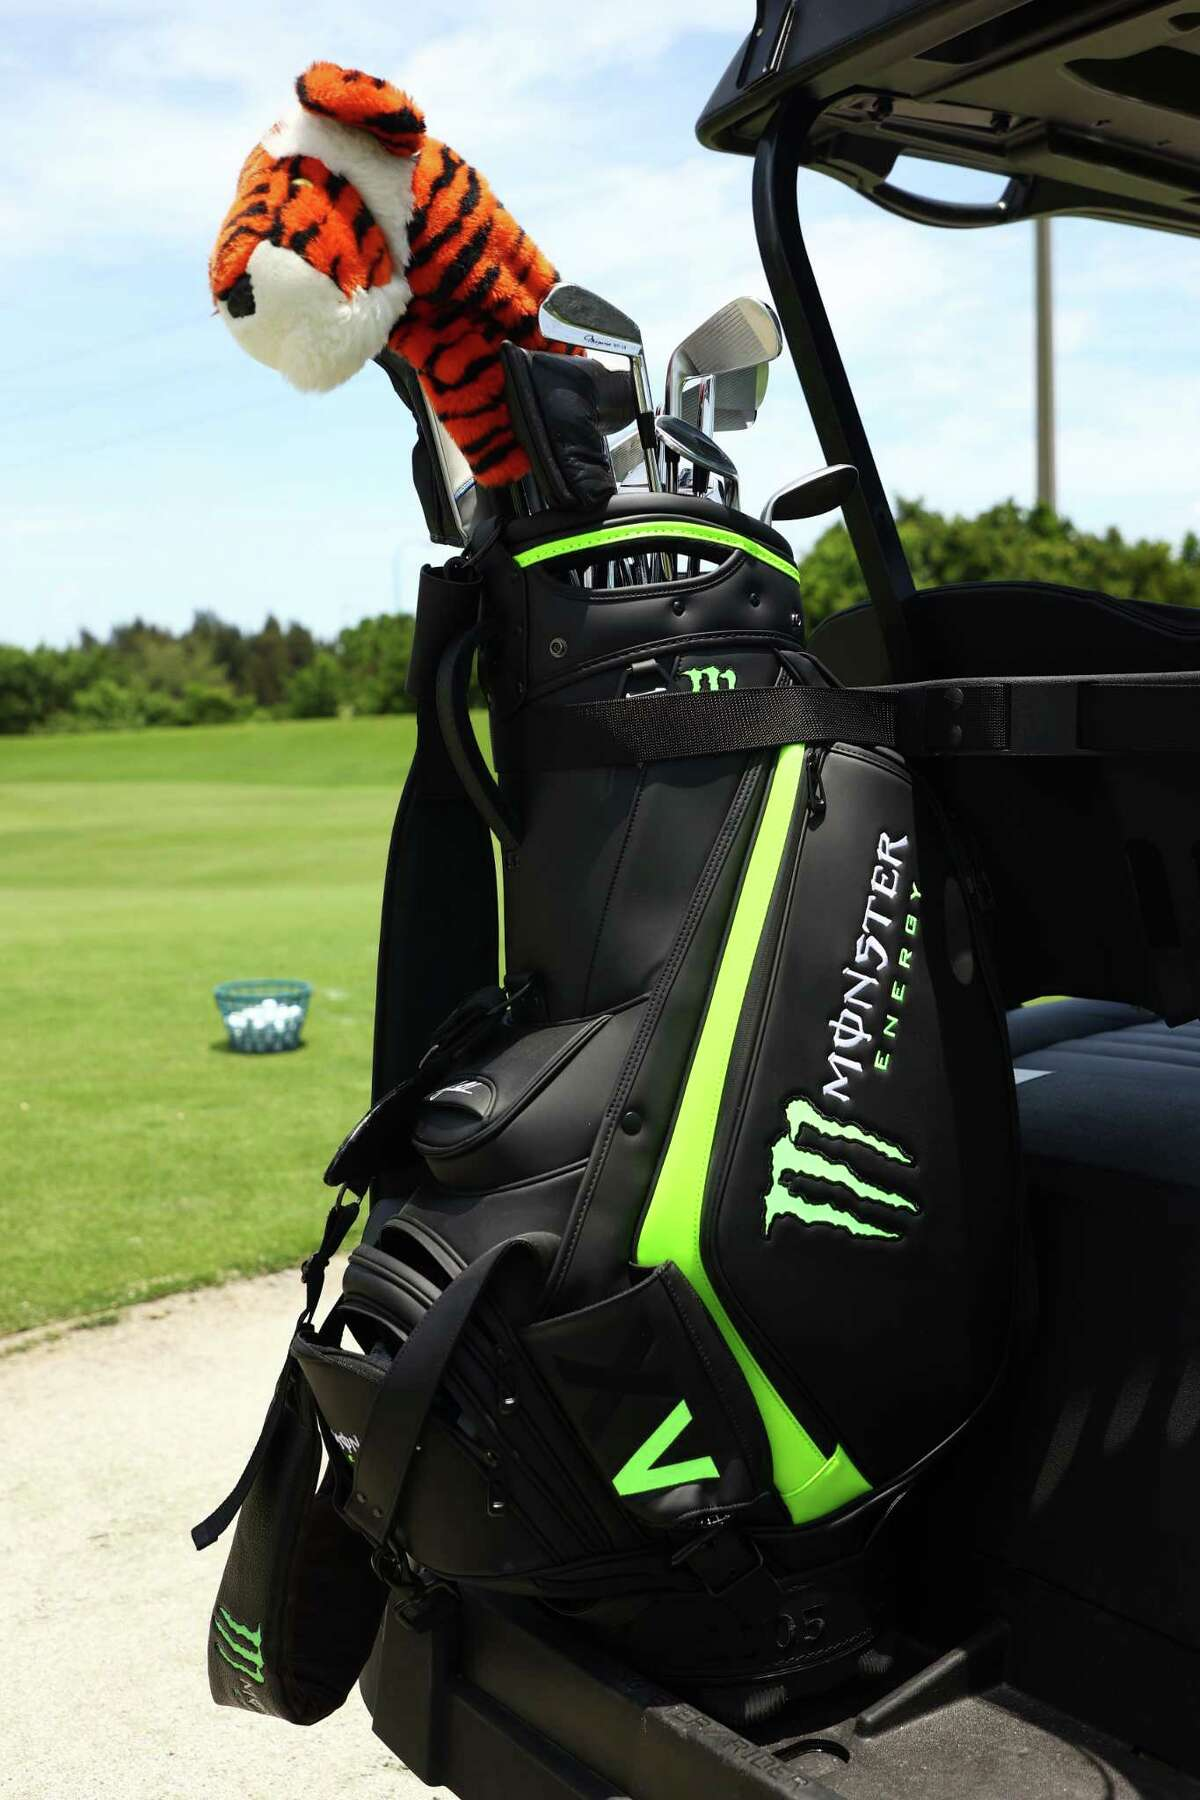 HOBE SOUND, FLORIDA - MAY 23: A detail of the bag of Tiger Woods during a practice round for The Match: Champions For Charity at Medalist Golf Club on May 23, 2020 in Hobe Sound, Florida.